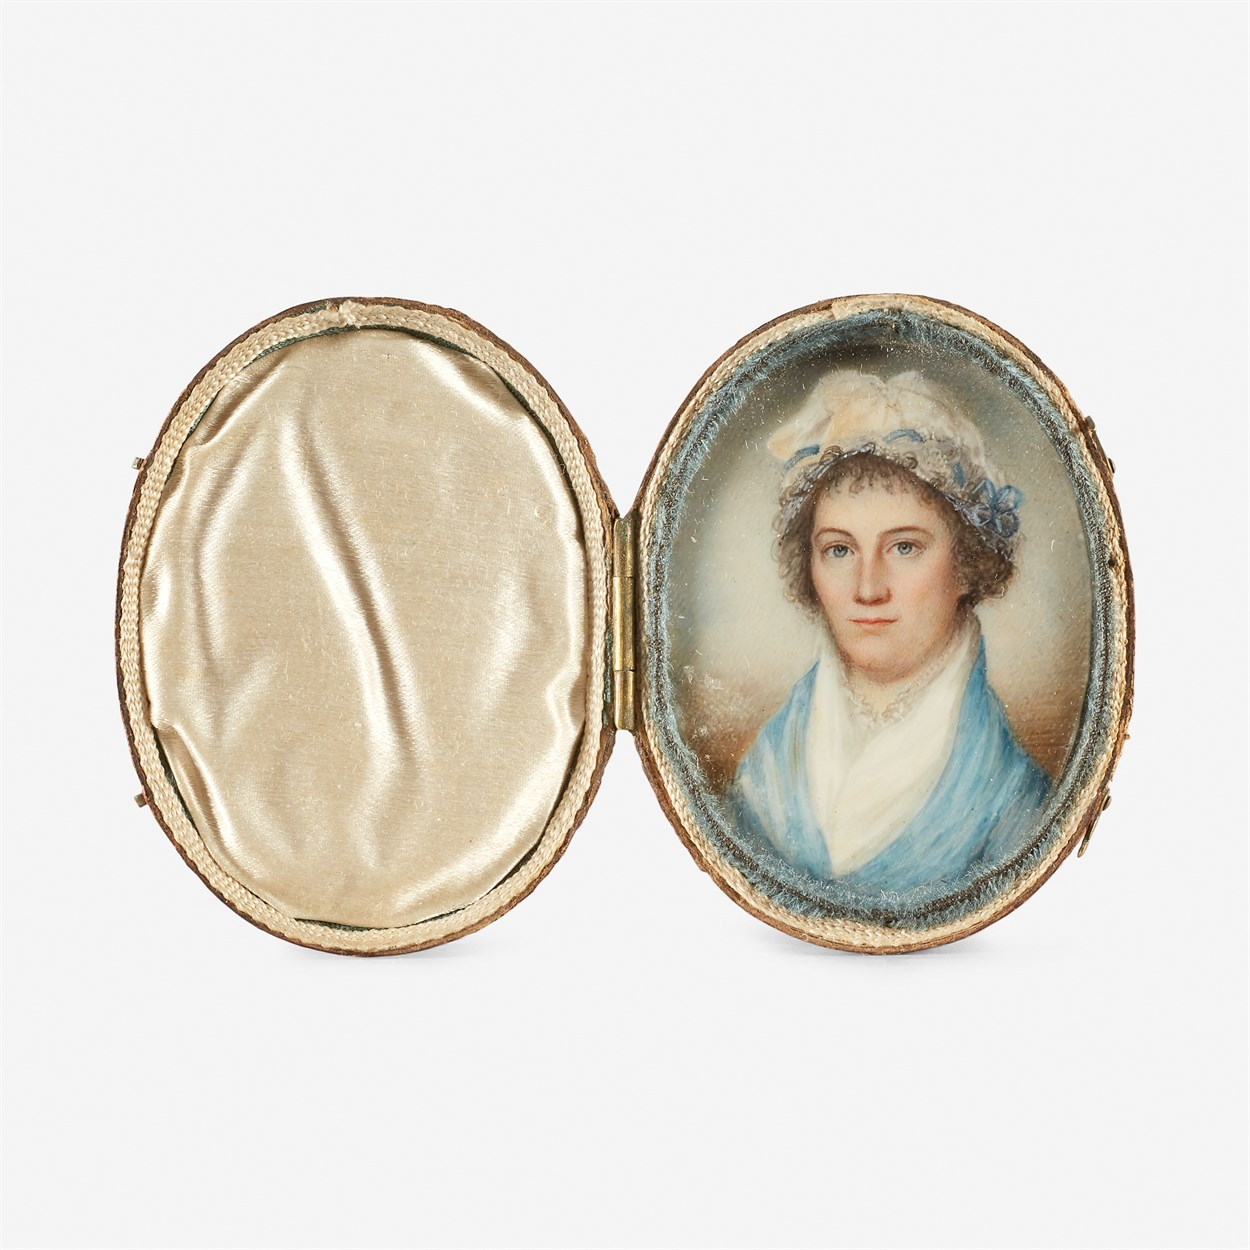 Lot 57 - Attributed to James Peale (1749-1831)